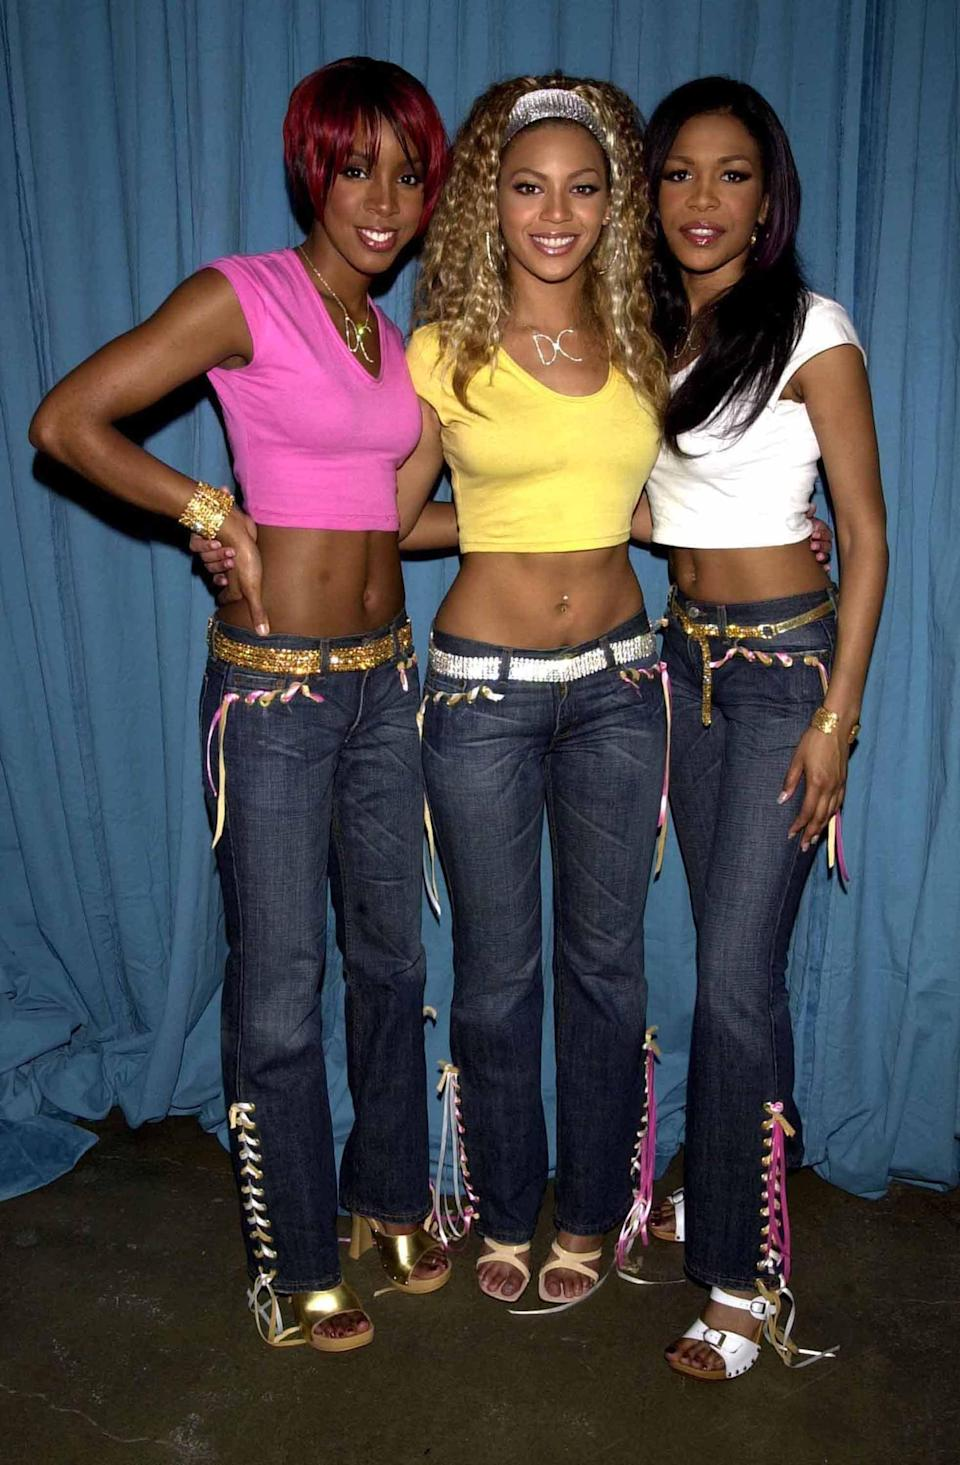 <p>Wearing crop tops and low-slung jeans at an event - it doesn't get more 2001 than that! </p>